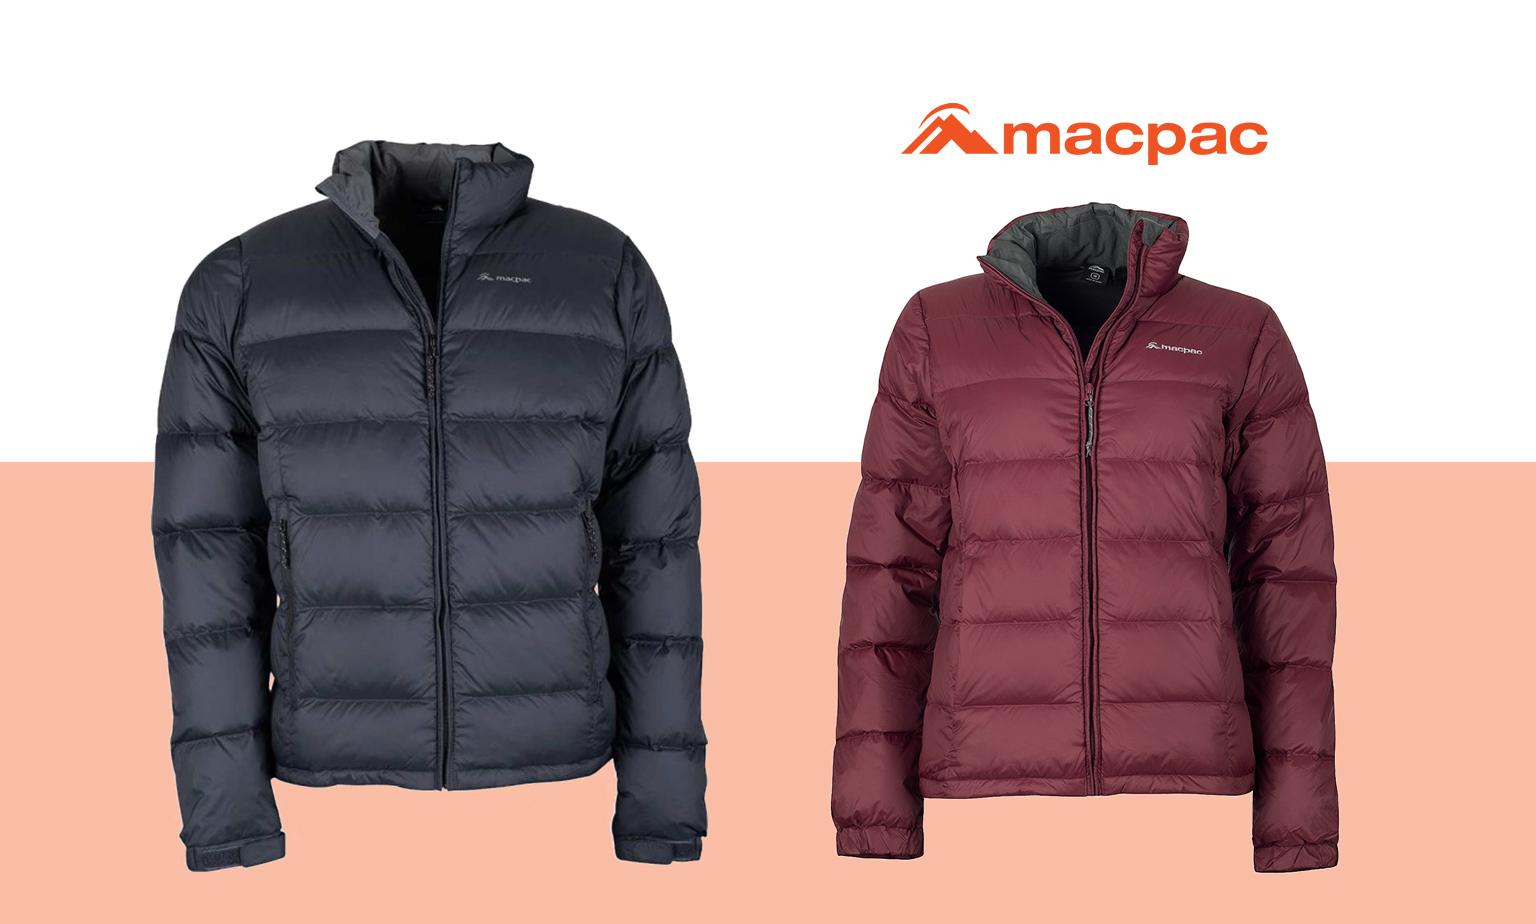 Up to 50% off Macpac